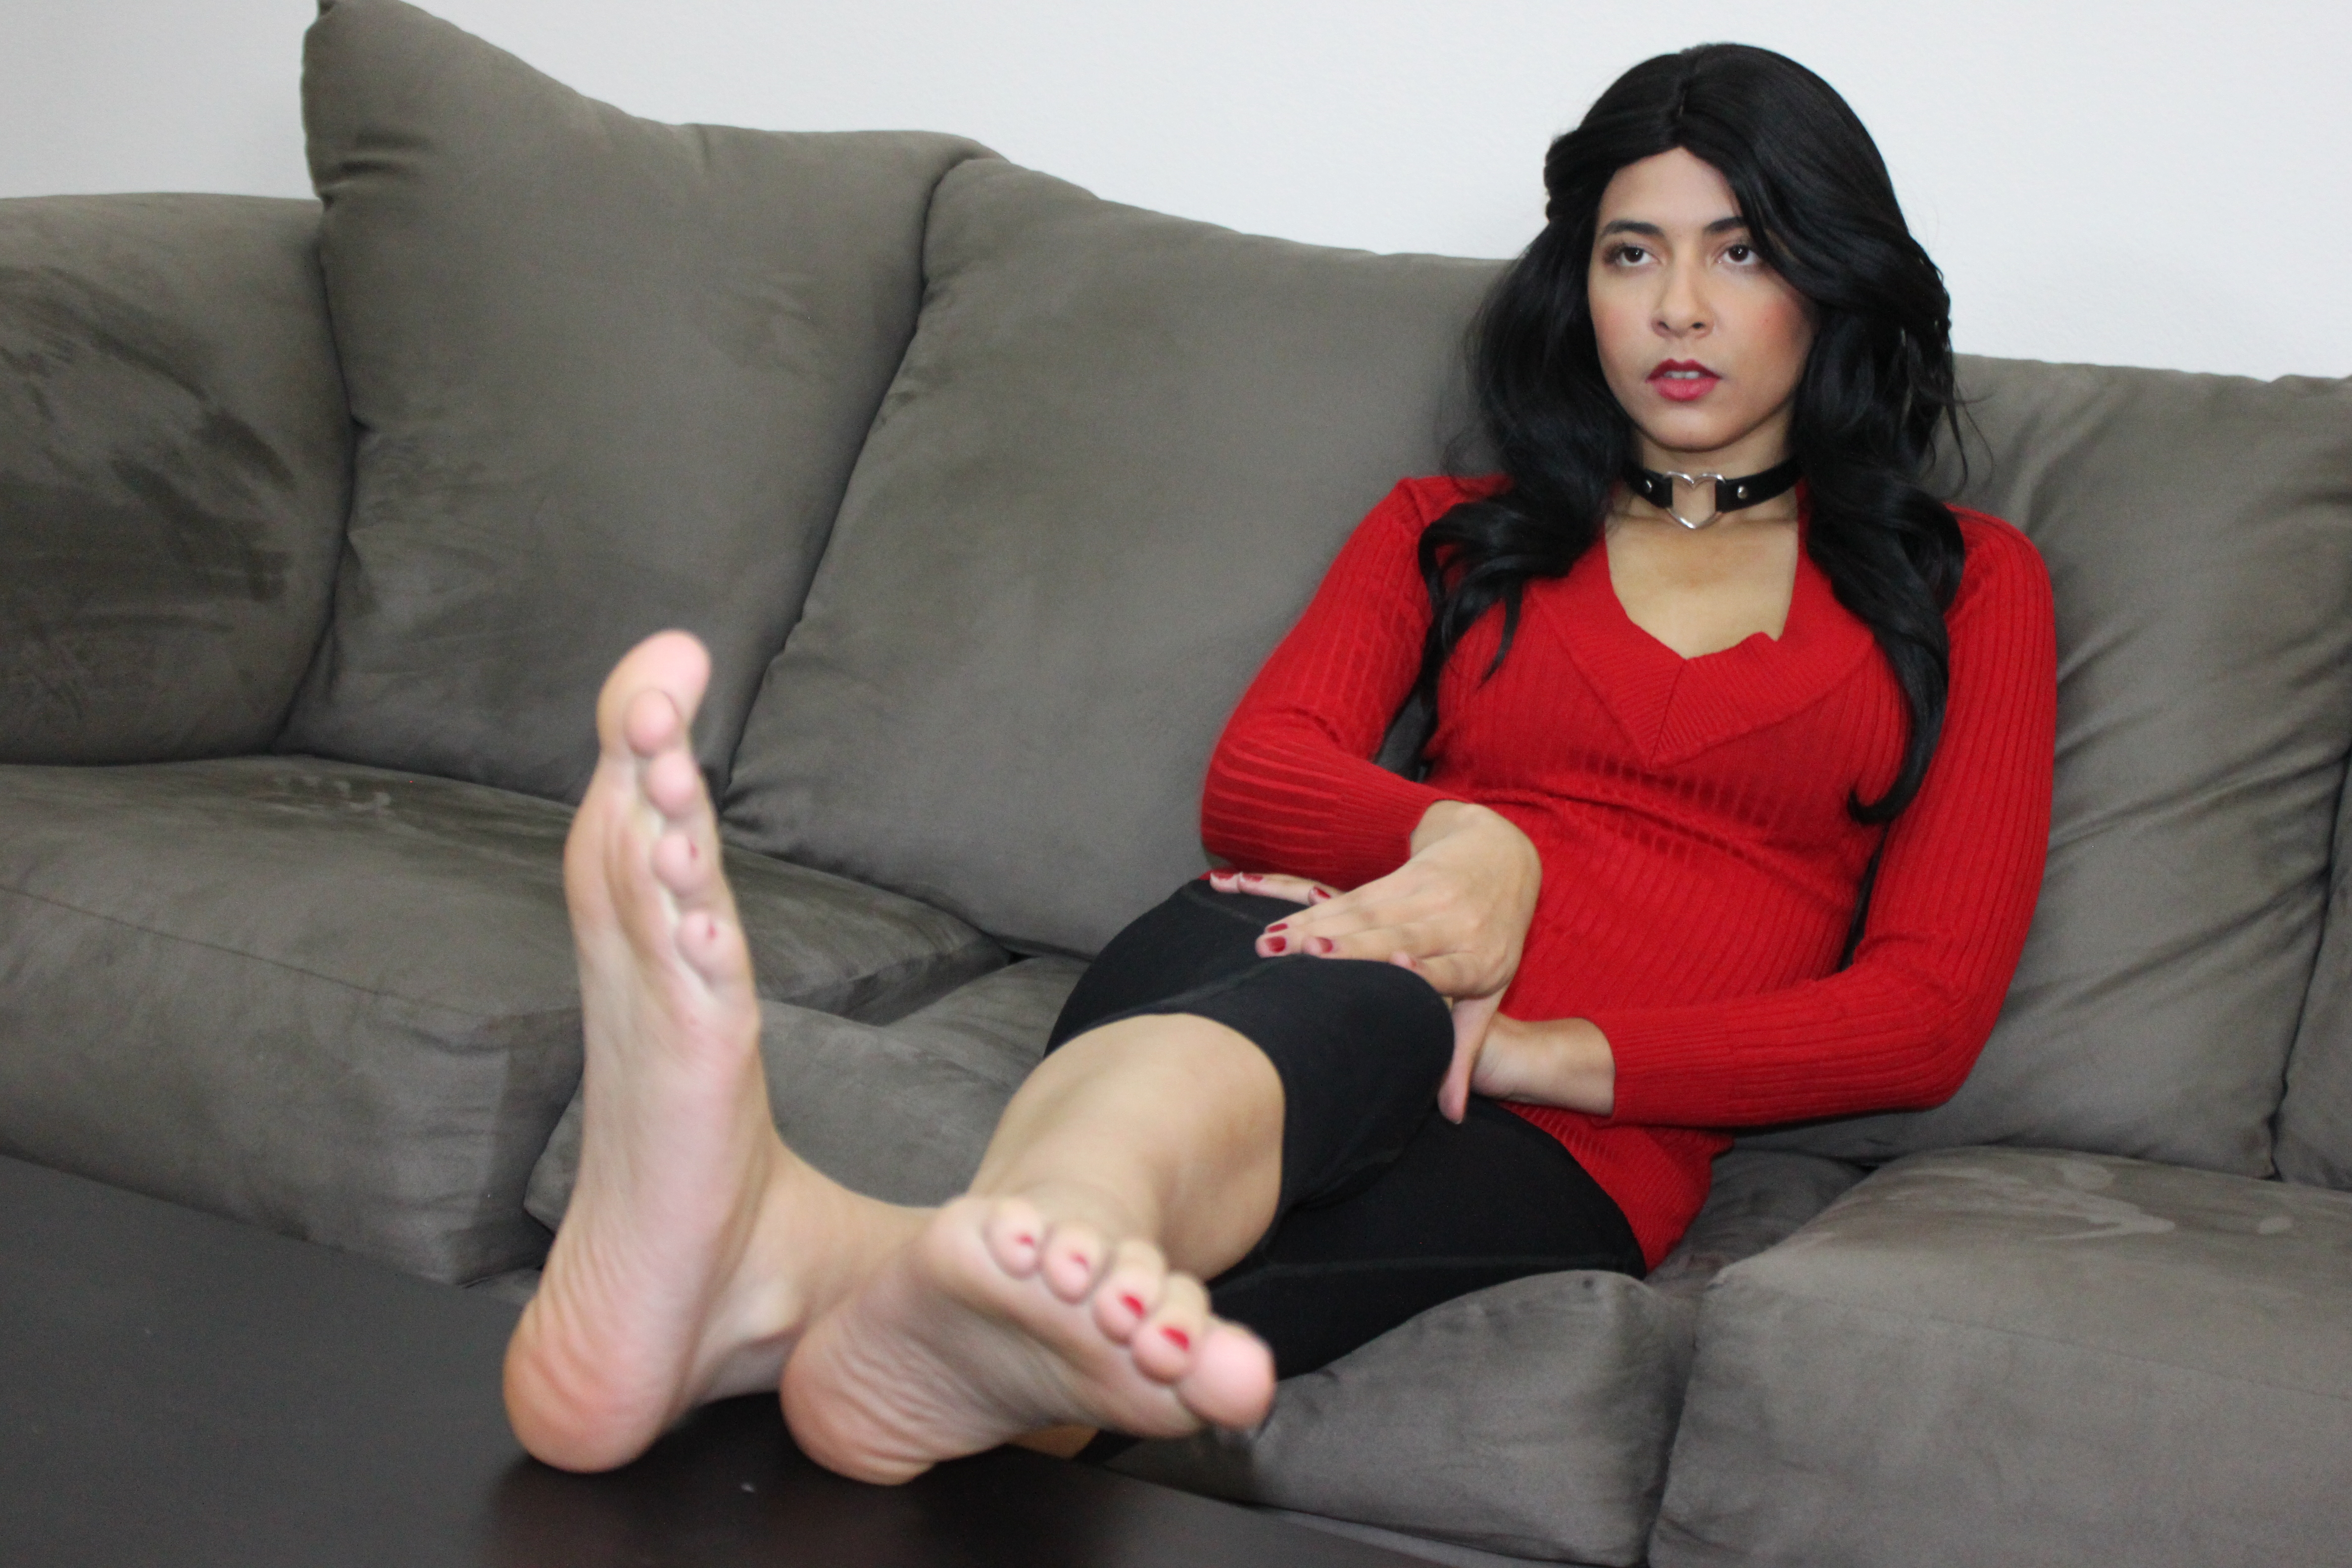 footworship livecam